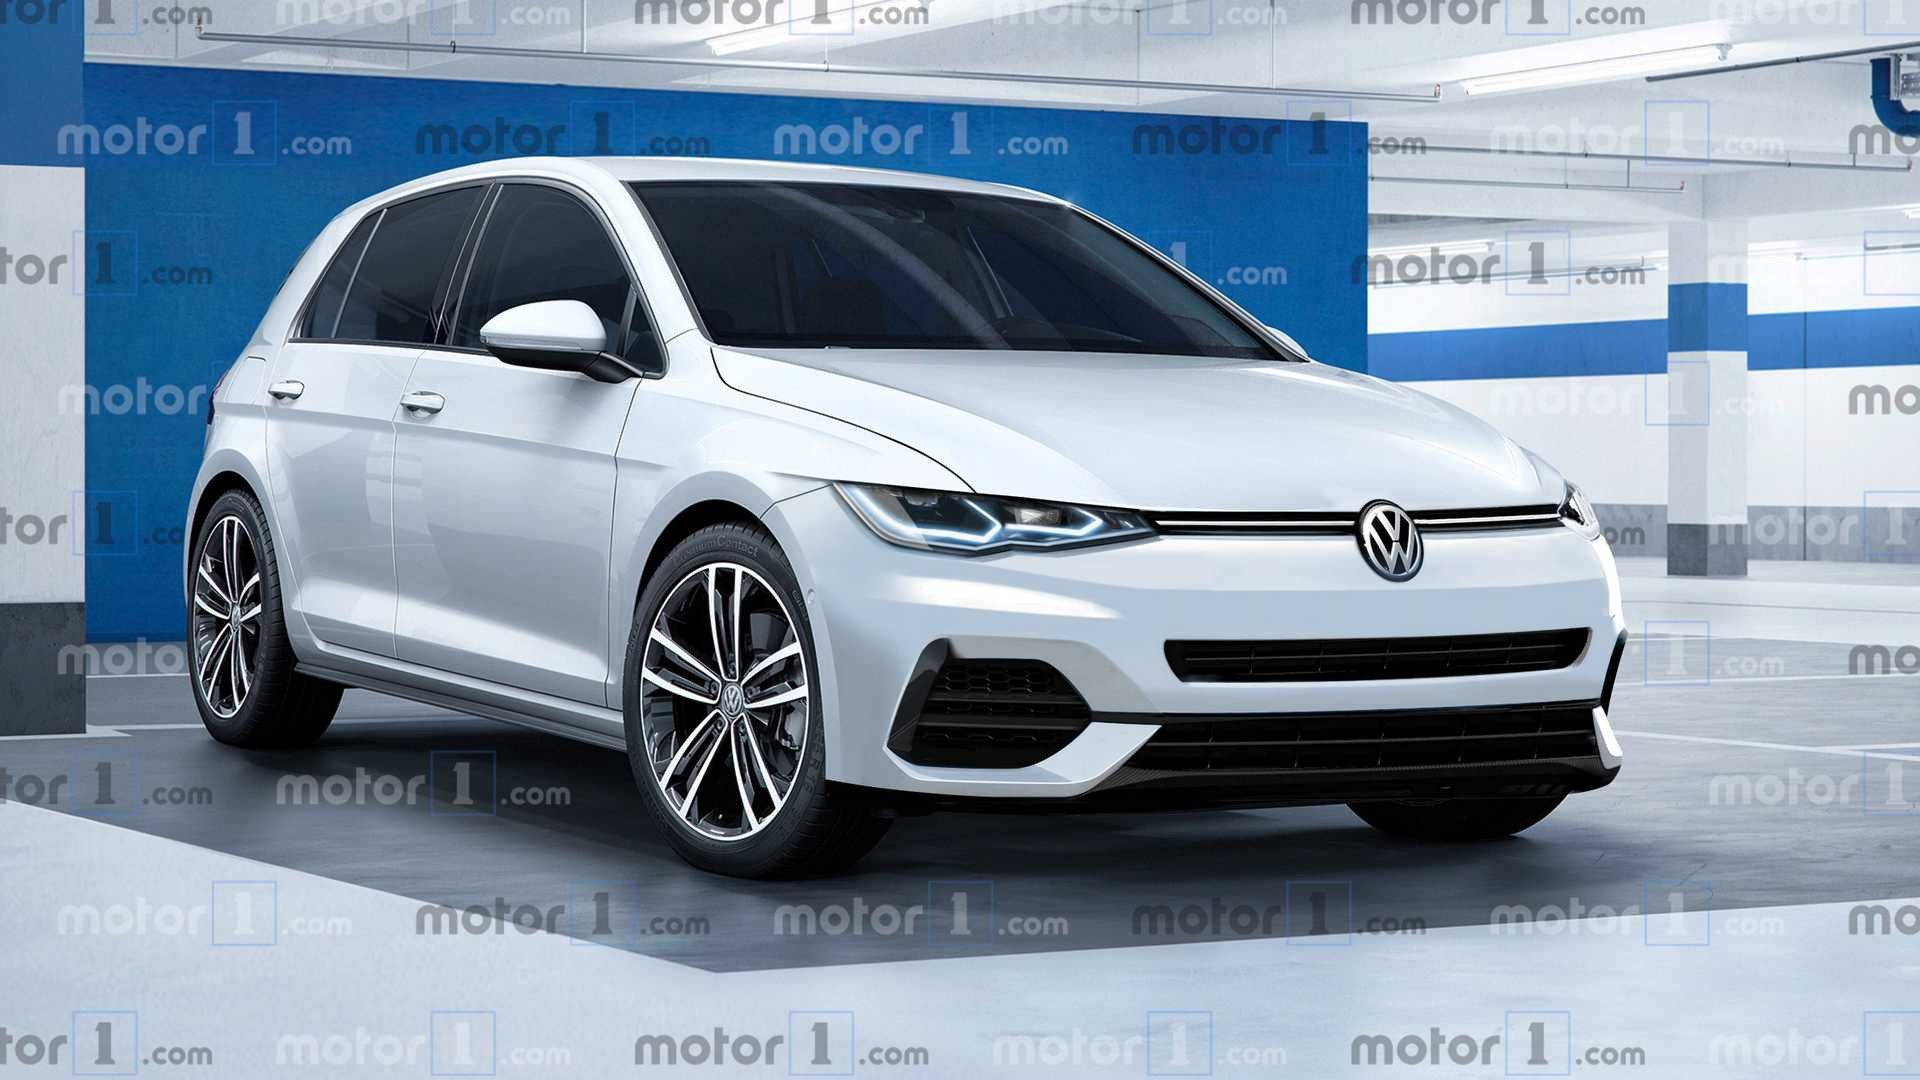 Volkswagen E Golf 2020 Price And Release Datecar Update 2020 In 2020 Volkswagen Golf R Vw Cc Volkswagen Golf